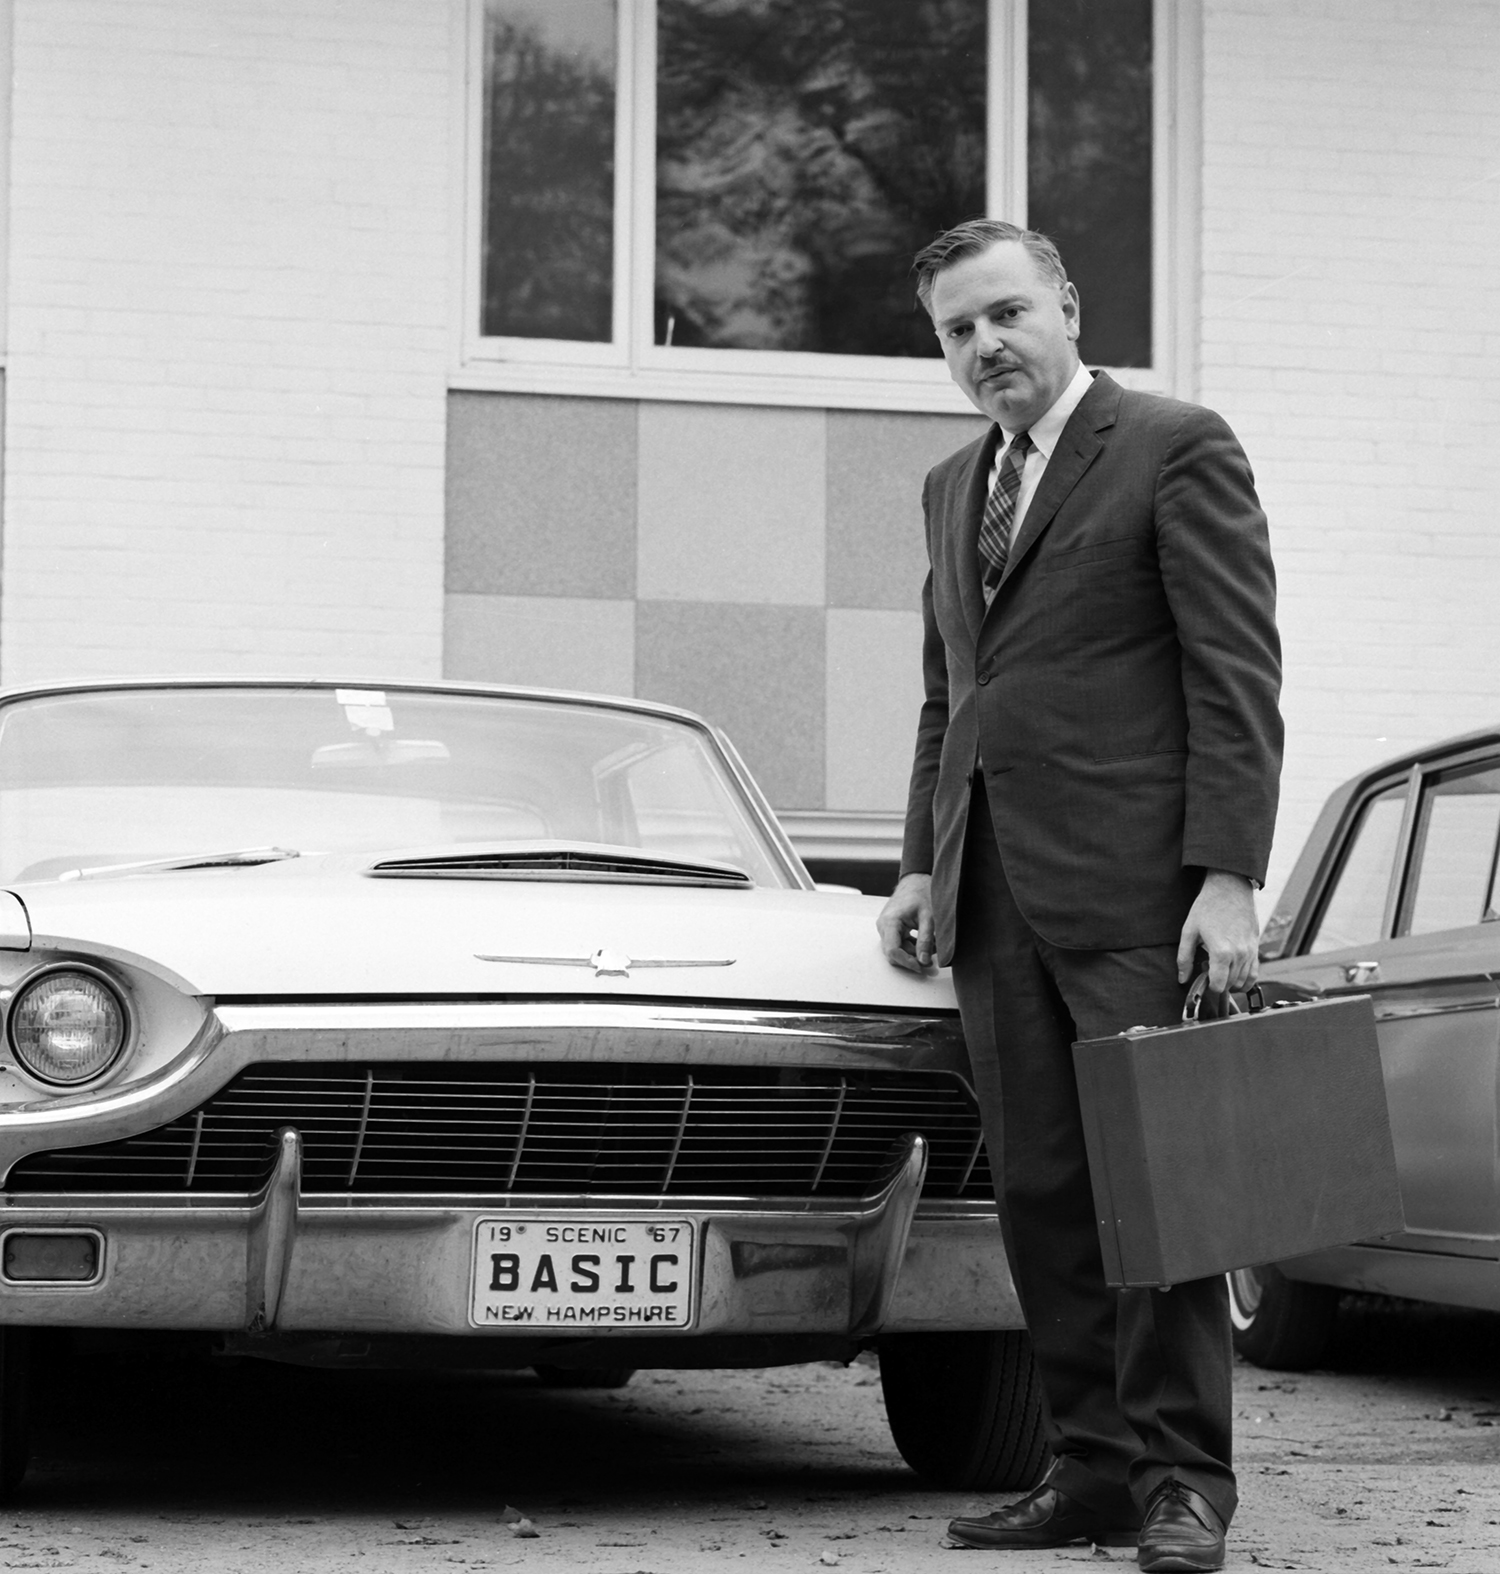 John Kemeny shows off his vanity license plate in 1967